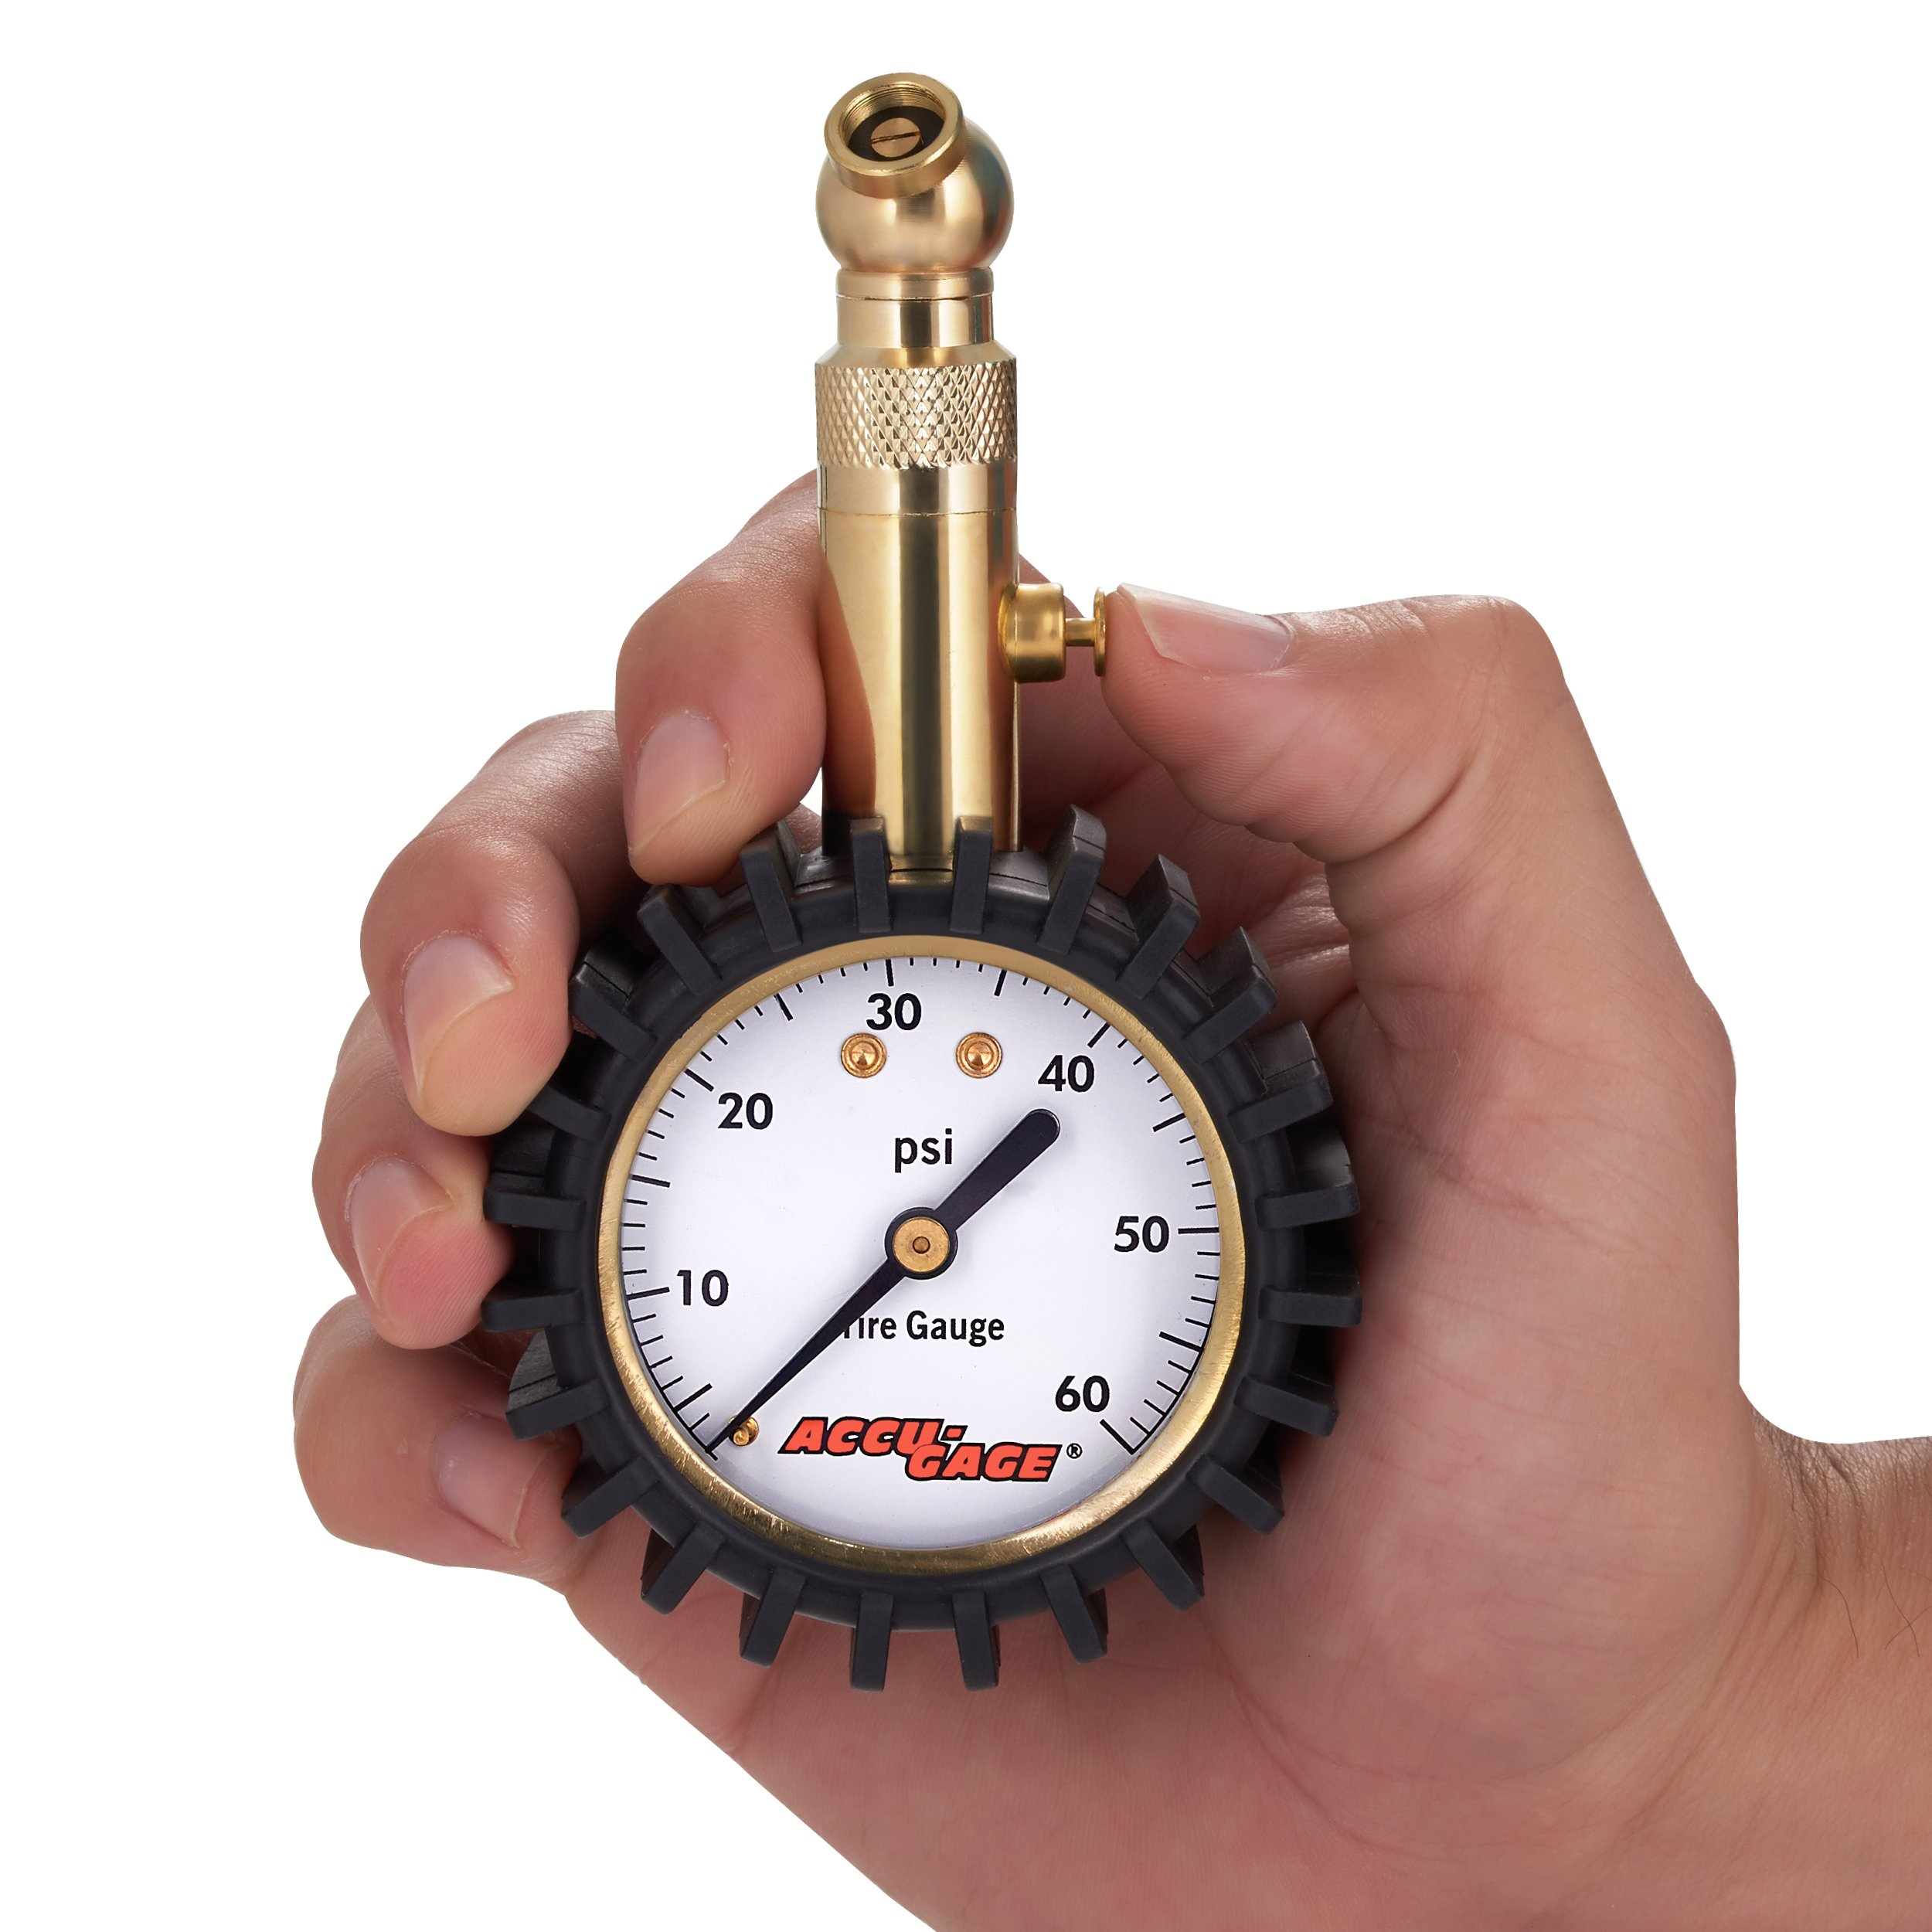 Accu-Gage RS60XA Professional Tire Pressure Gauge with Protective Rubber Guard (60 PSI) by Accu-Gage (Image #4)